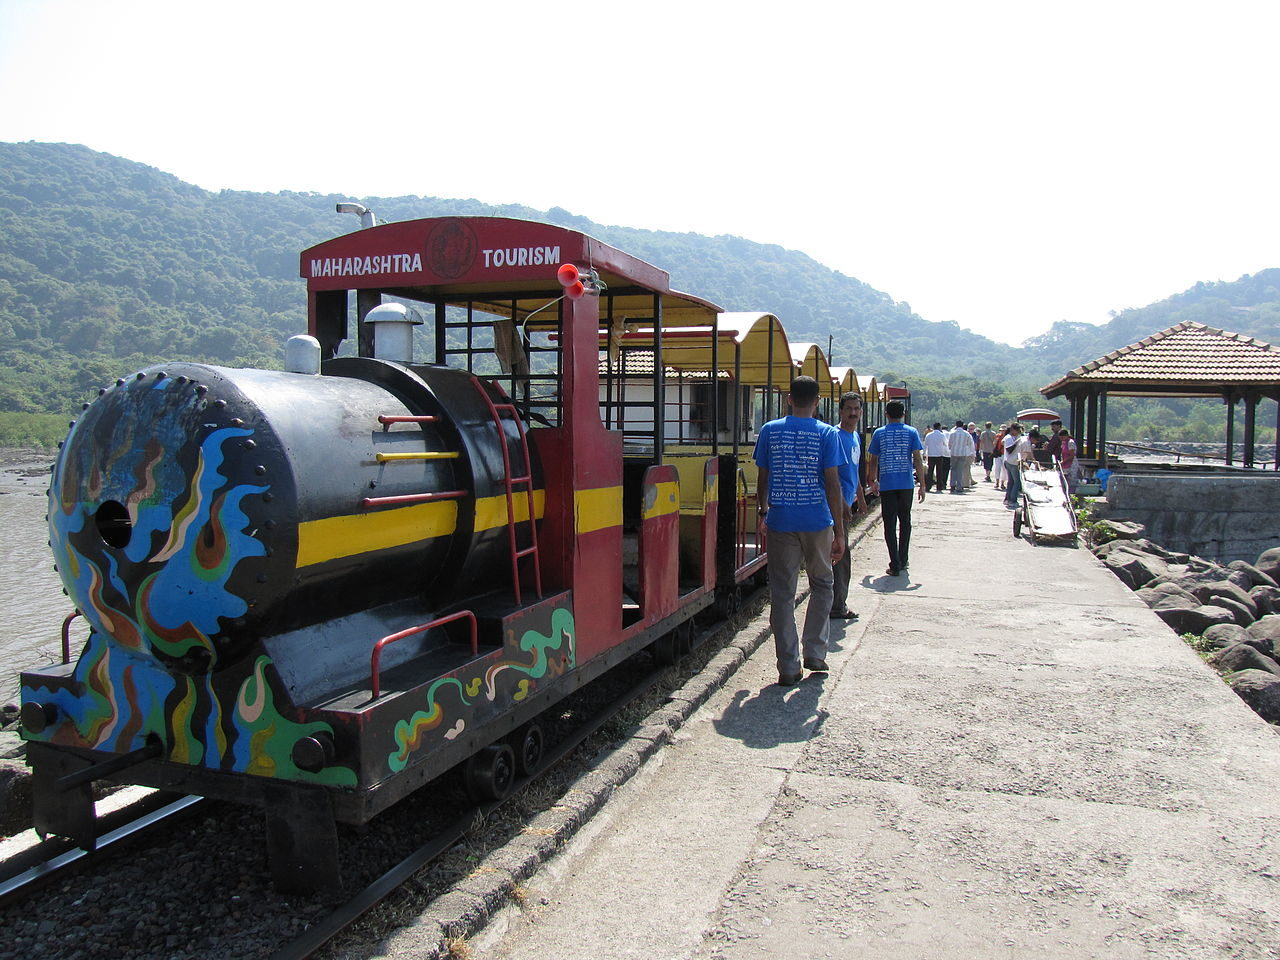 https://thesubmarine.it/wp-content/uploads/2019/03/1280px-Toy_train_to_go_to_the_hill_base_of_elephanta_caves-1280x960.jpg